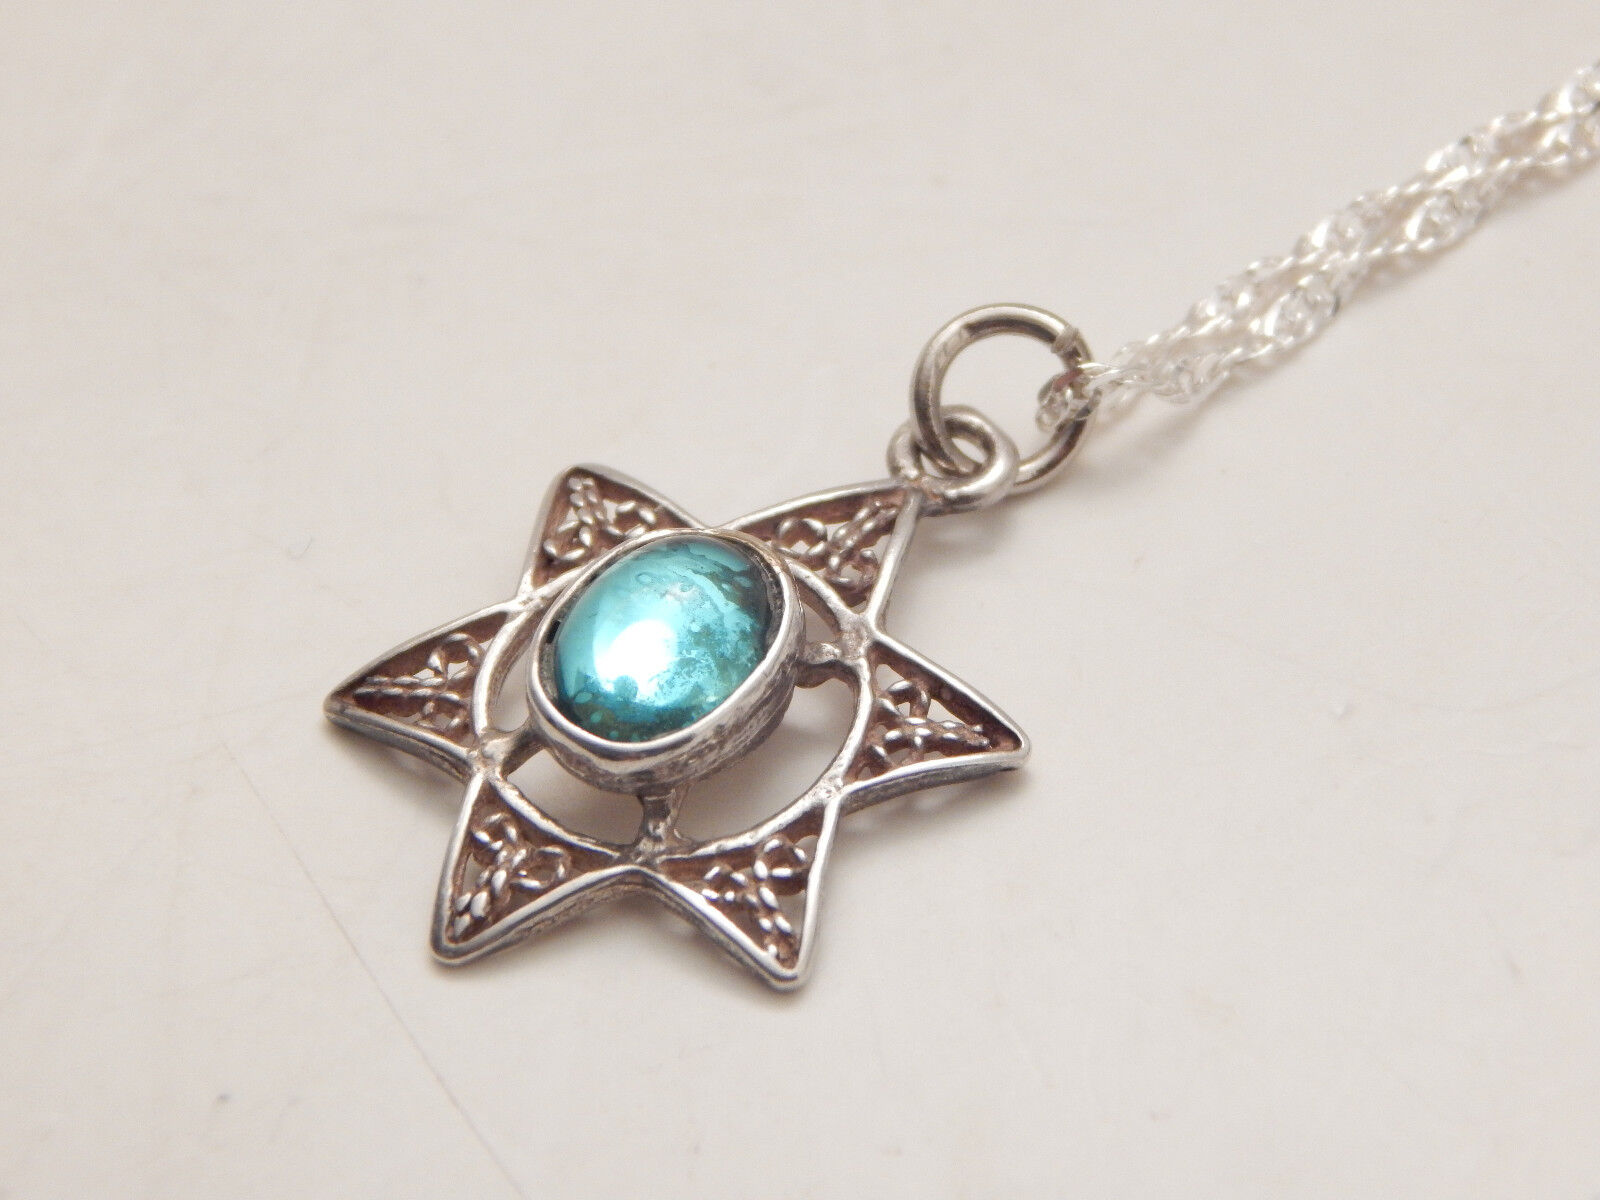 Filigree Sterling Silver Star Of David Pendant Necklace With Teal Stone